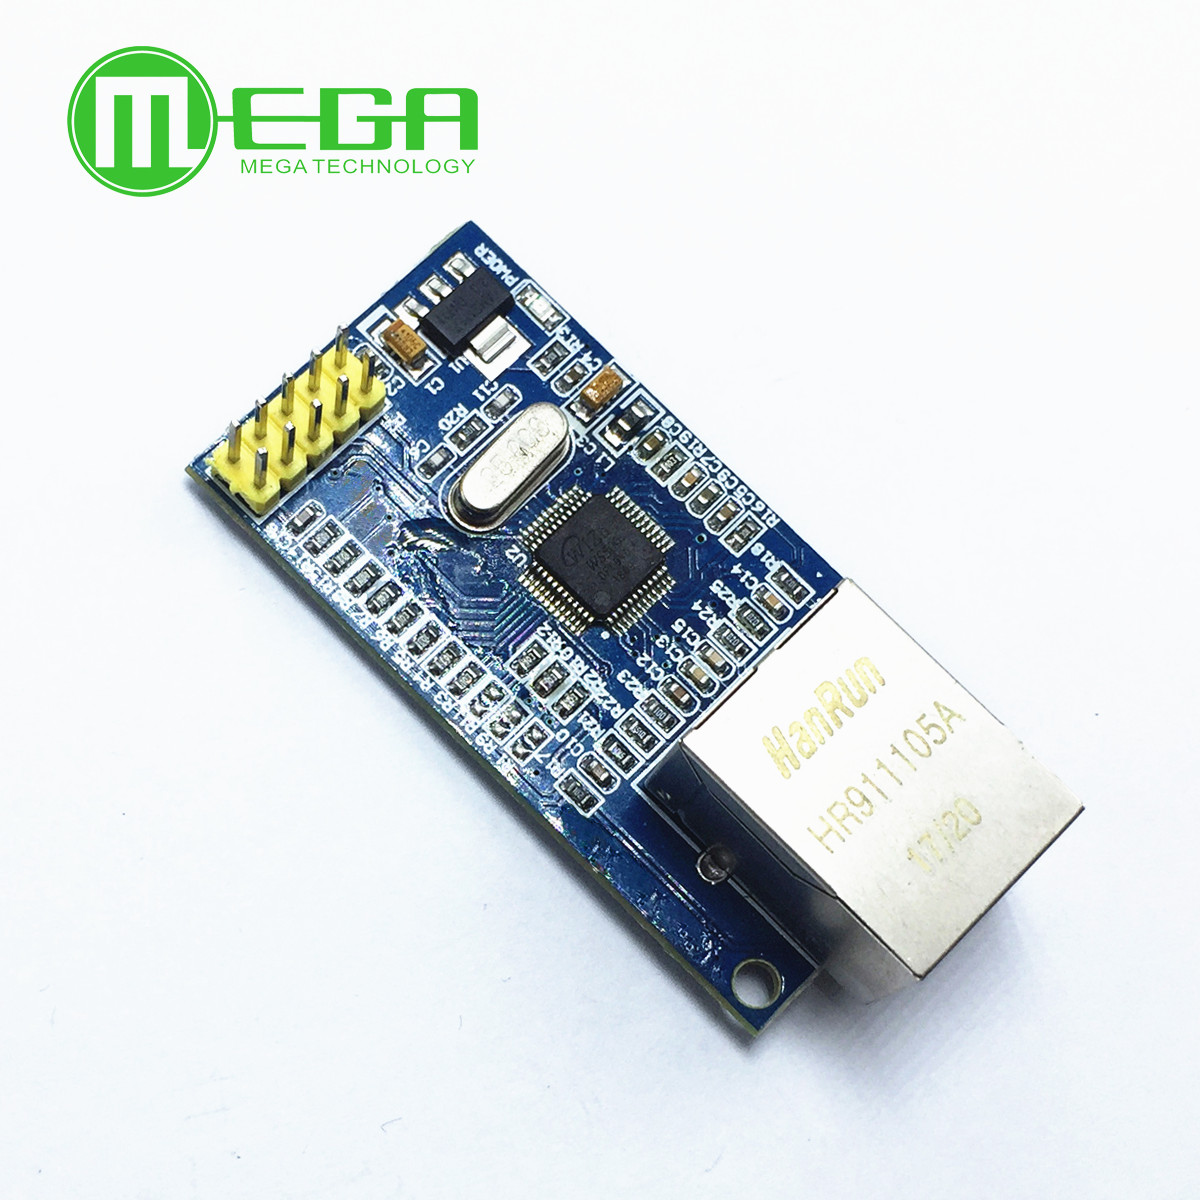 1pcs For Arduino W5500 Ethernet Network Modules For Arduino TCP/IP 51/STM32 SPI Interface 3.3V 5V I/O MCU